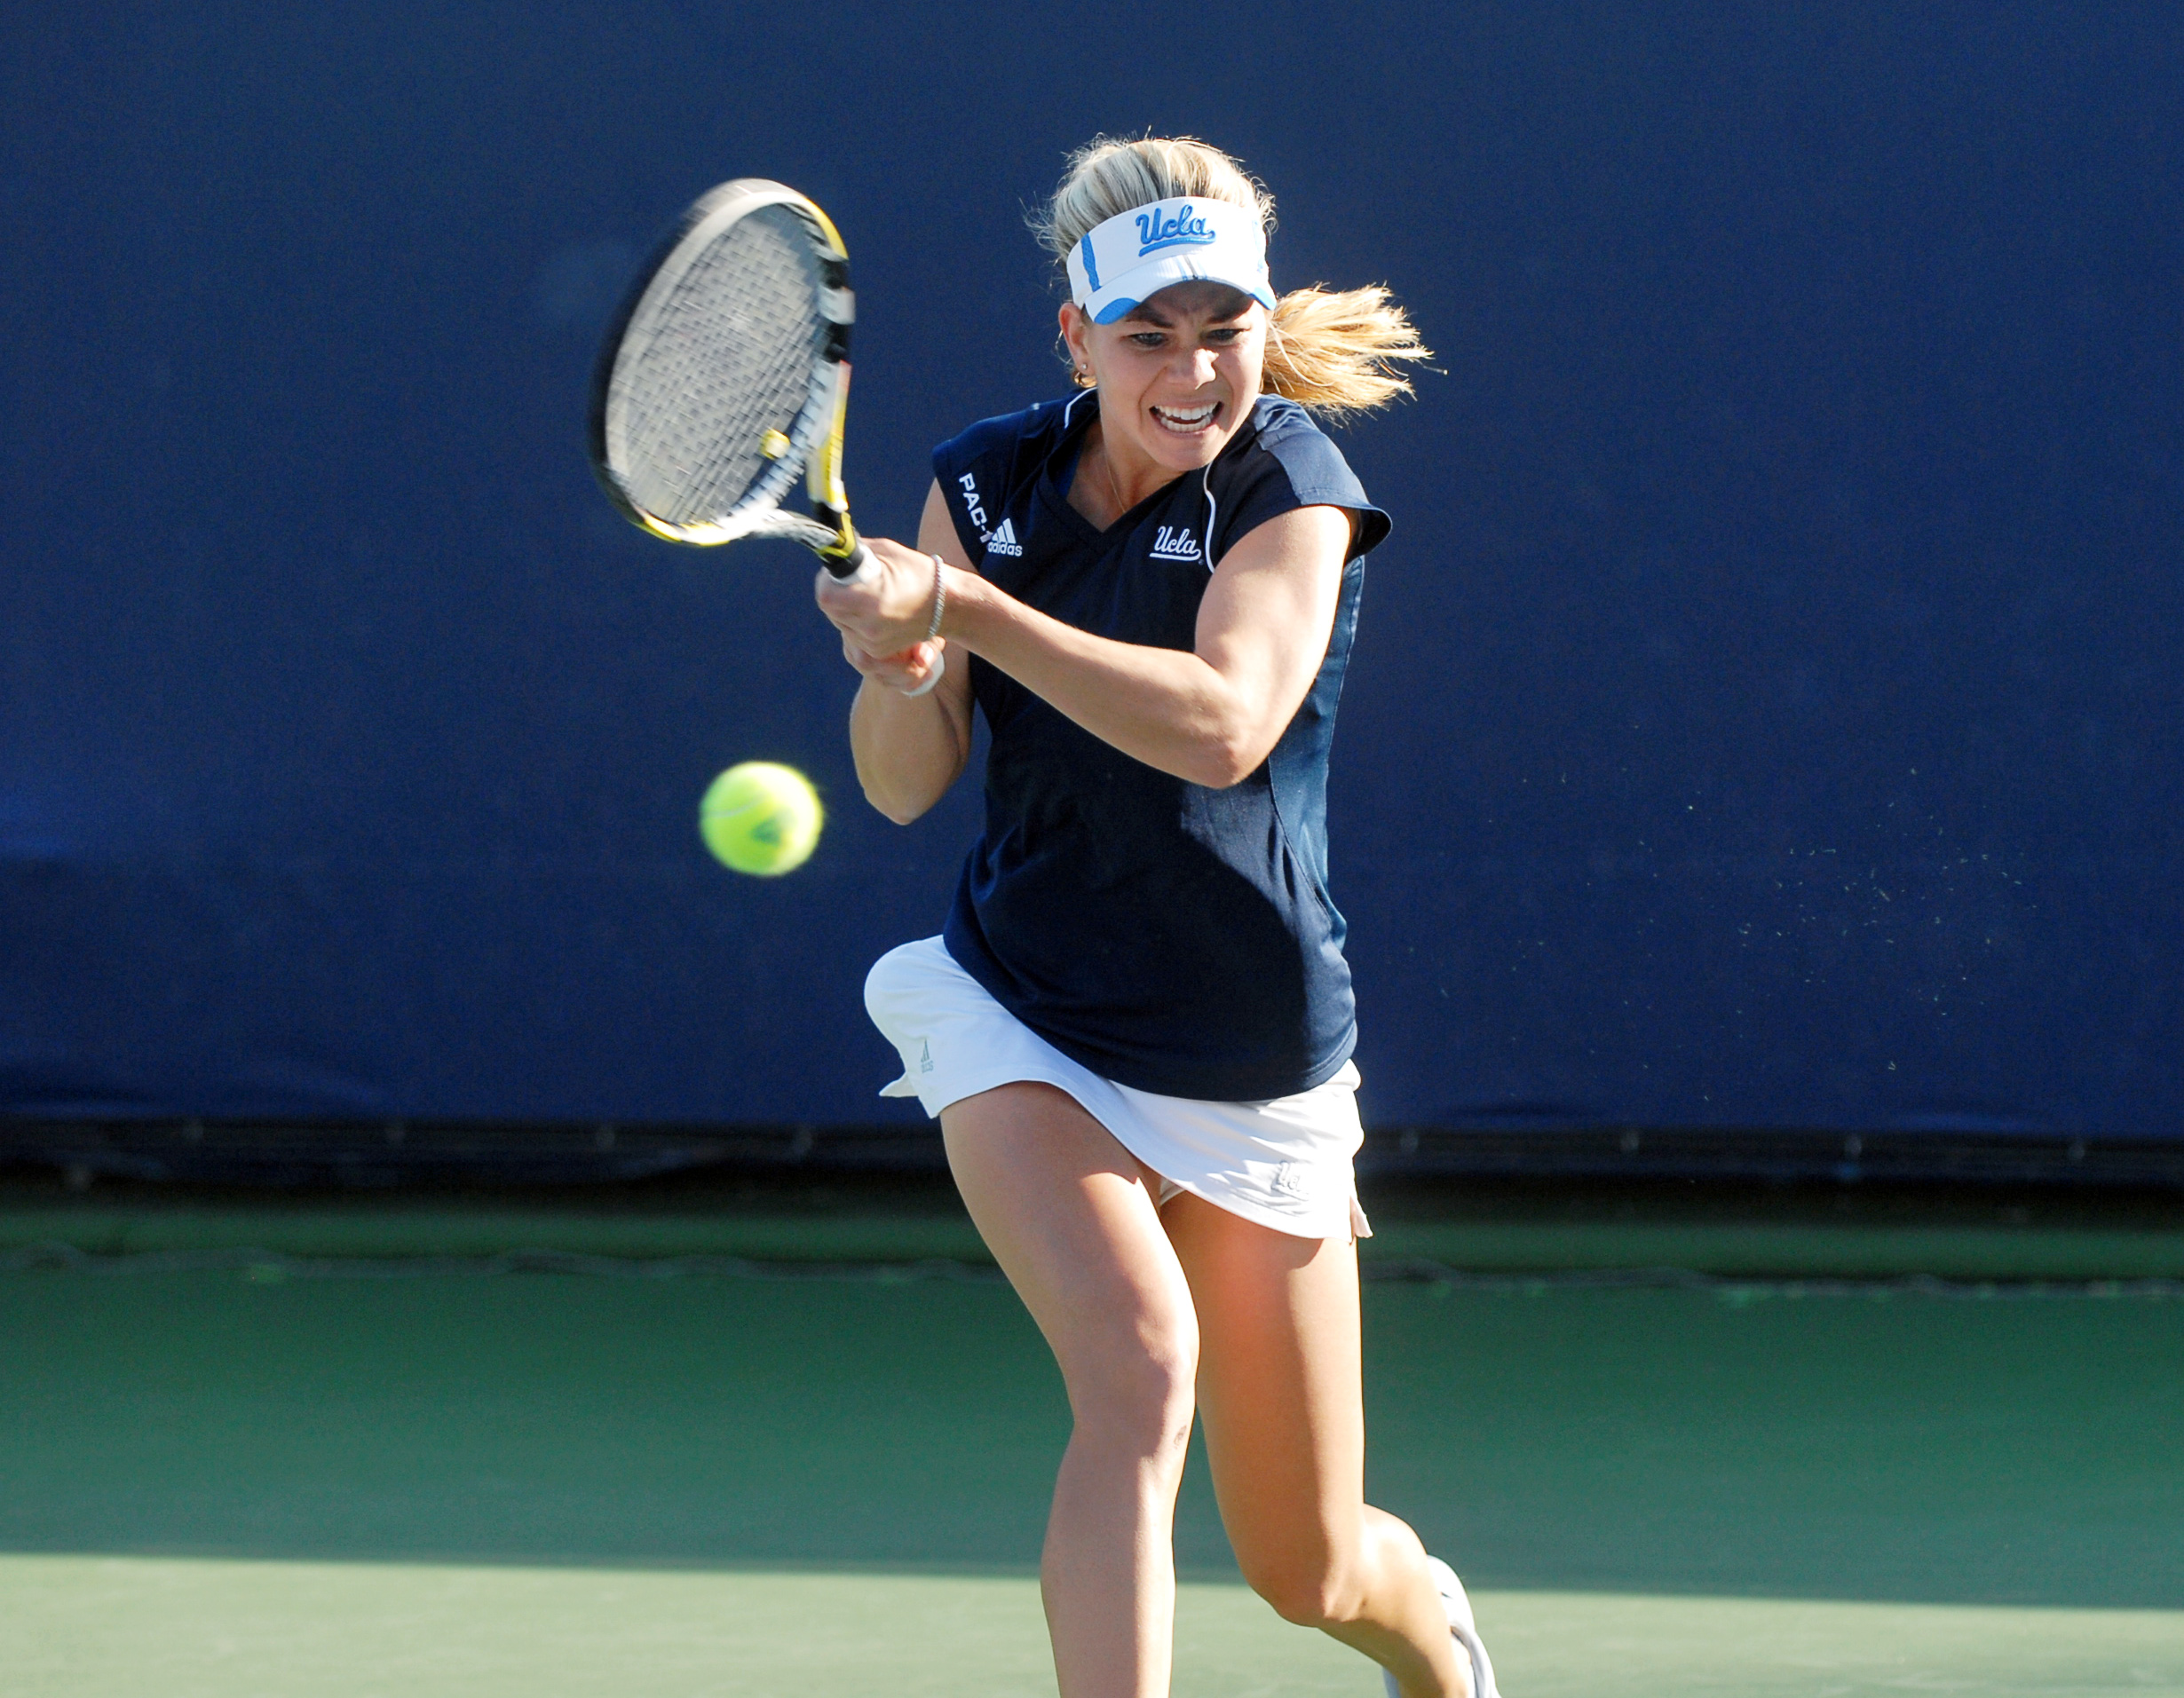 Junior transfer McCall Jones made her UCLA debut on Wednesday against St. Mary's, defeating the Gaels' senior Alex Poorta 6-4, 6-1 at the No. 1 position. UCLA went on to win its season-opening match 5-2.